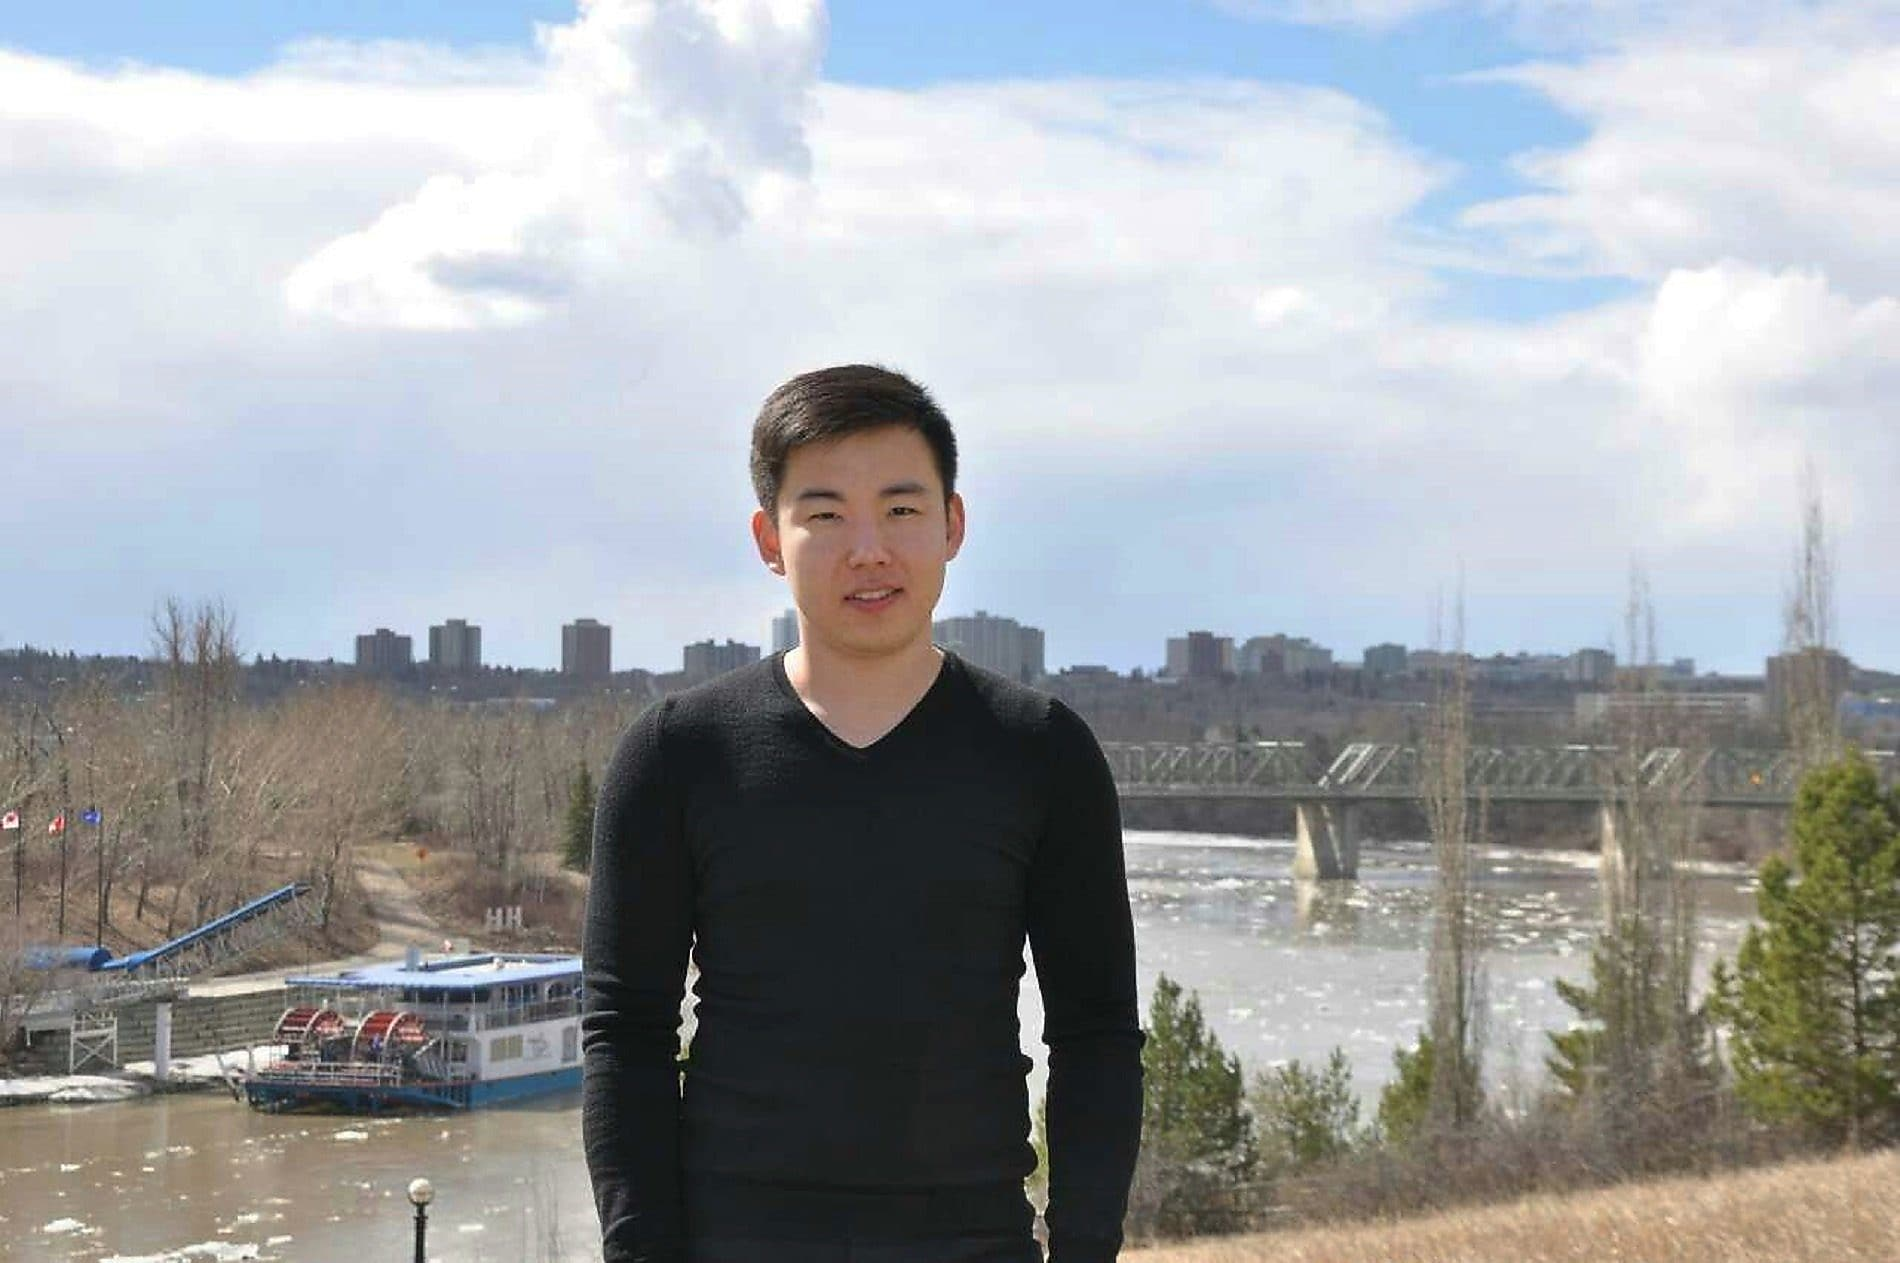 Candid portrait of Eddie Wang taken near the Shell Scotford Refinery